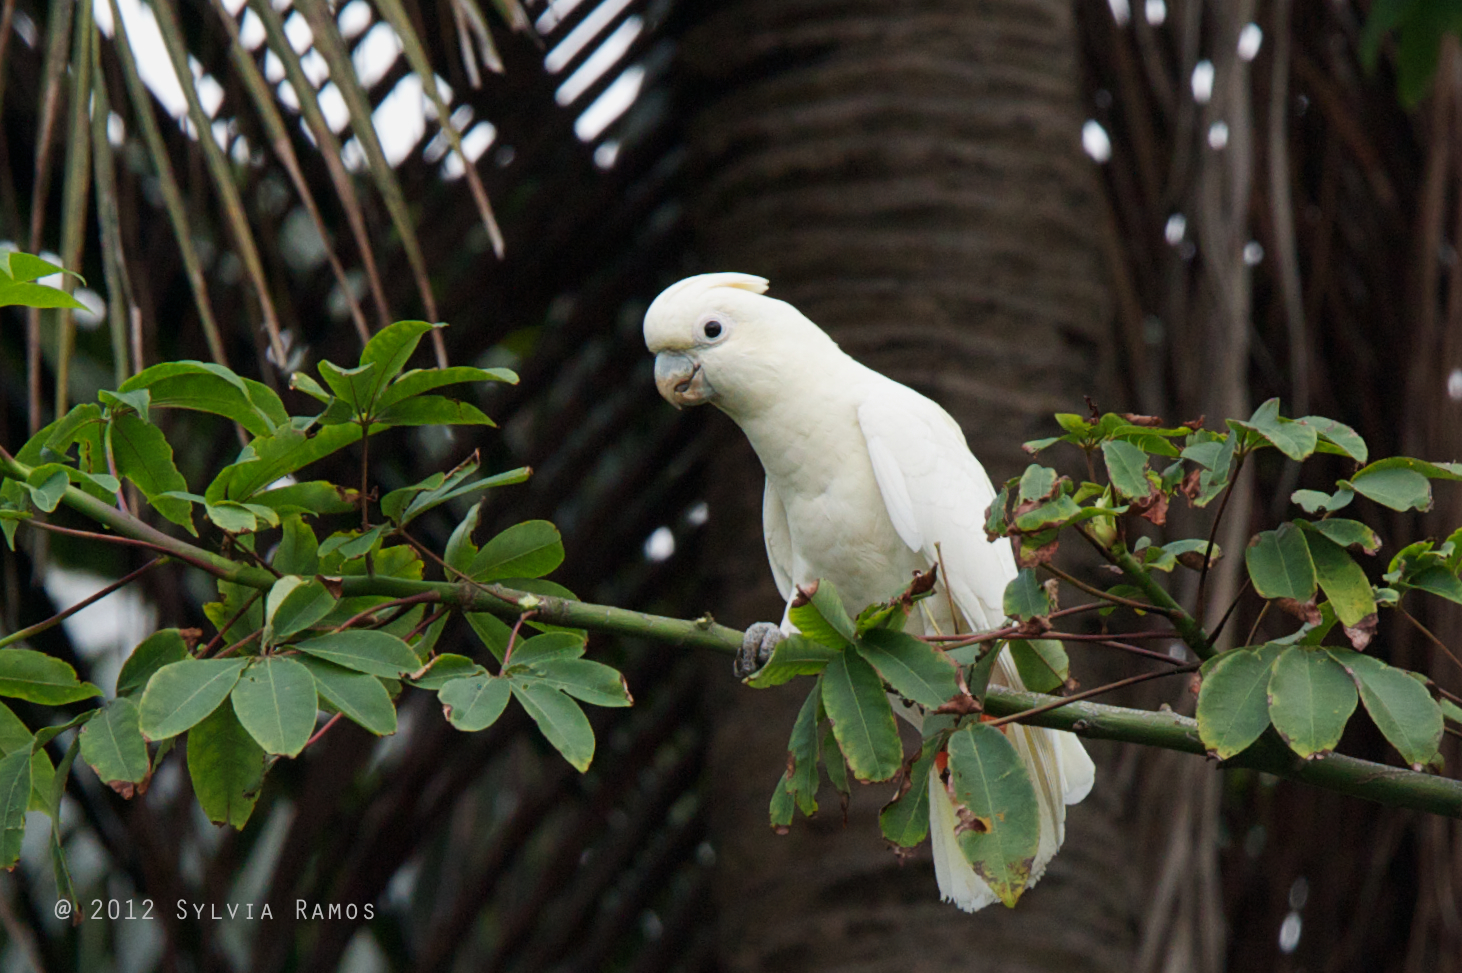 Philippine Cockatoo. Photo by Sylvia Ramos.